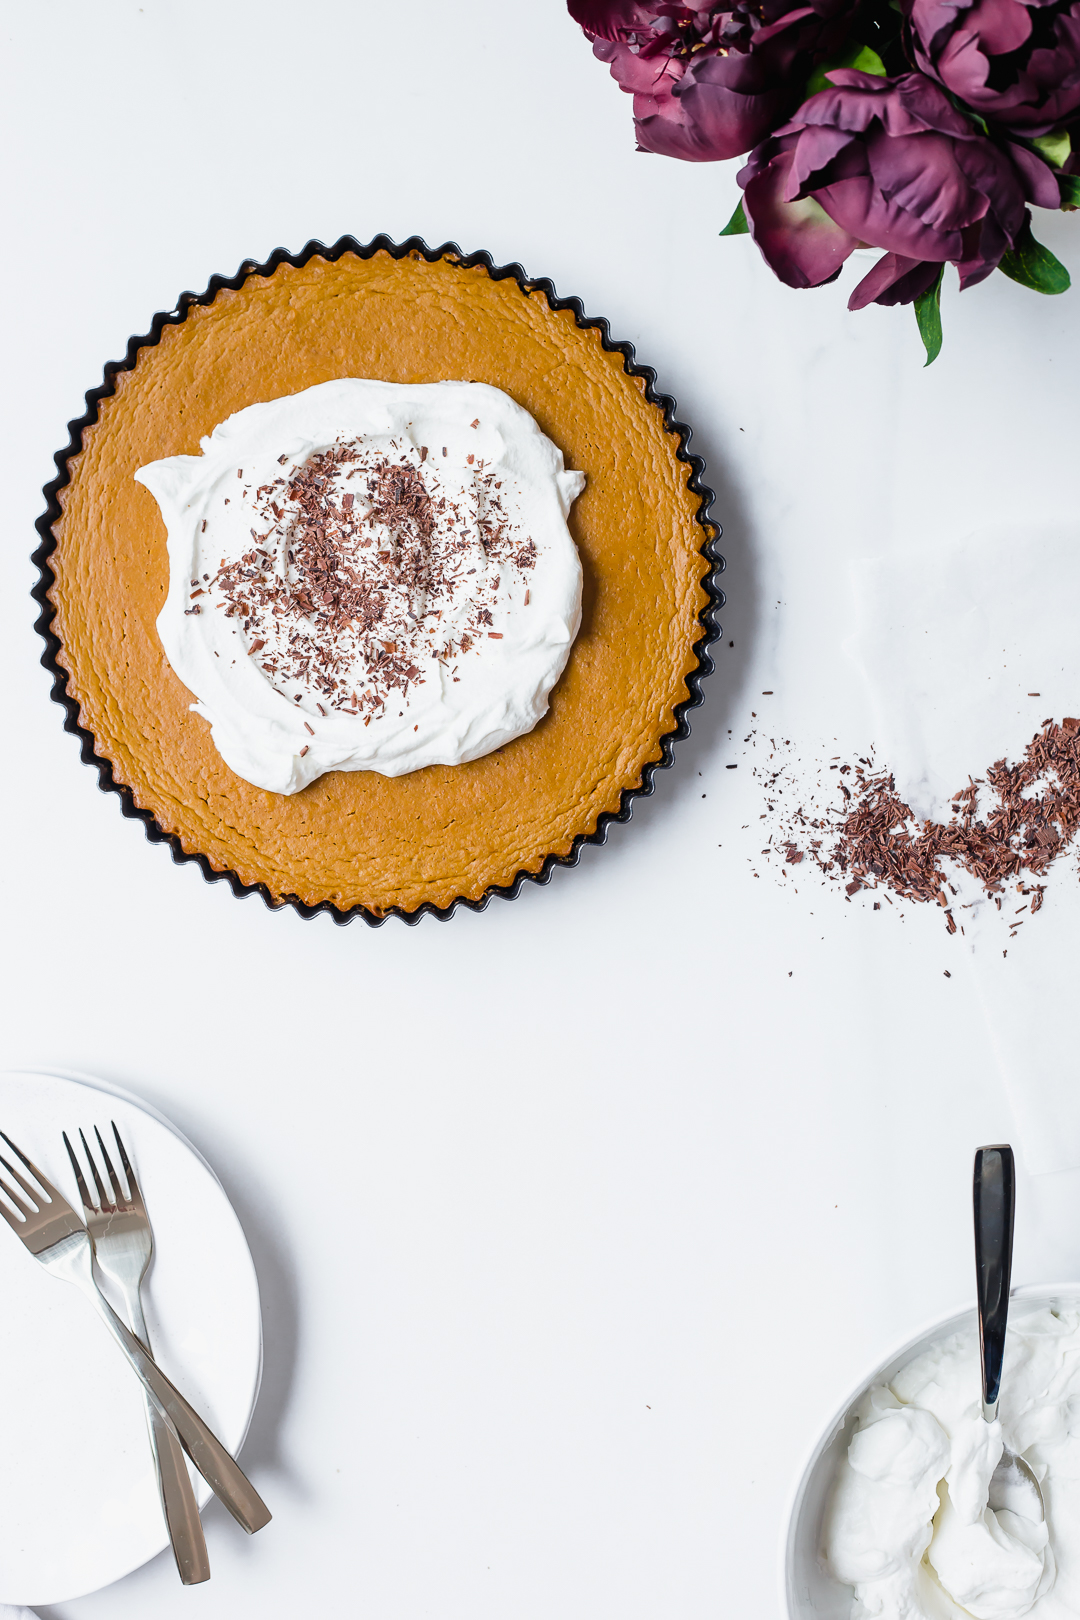 Overhead shot of Pumpkin Pie with chocolate cookie crust topped with whipped cream and chocolate shavings